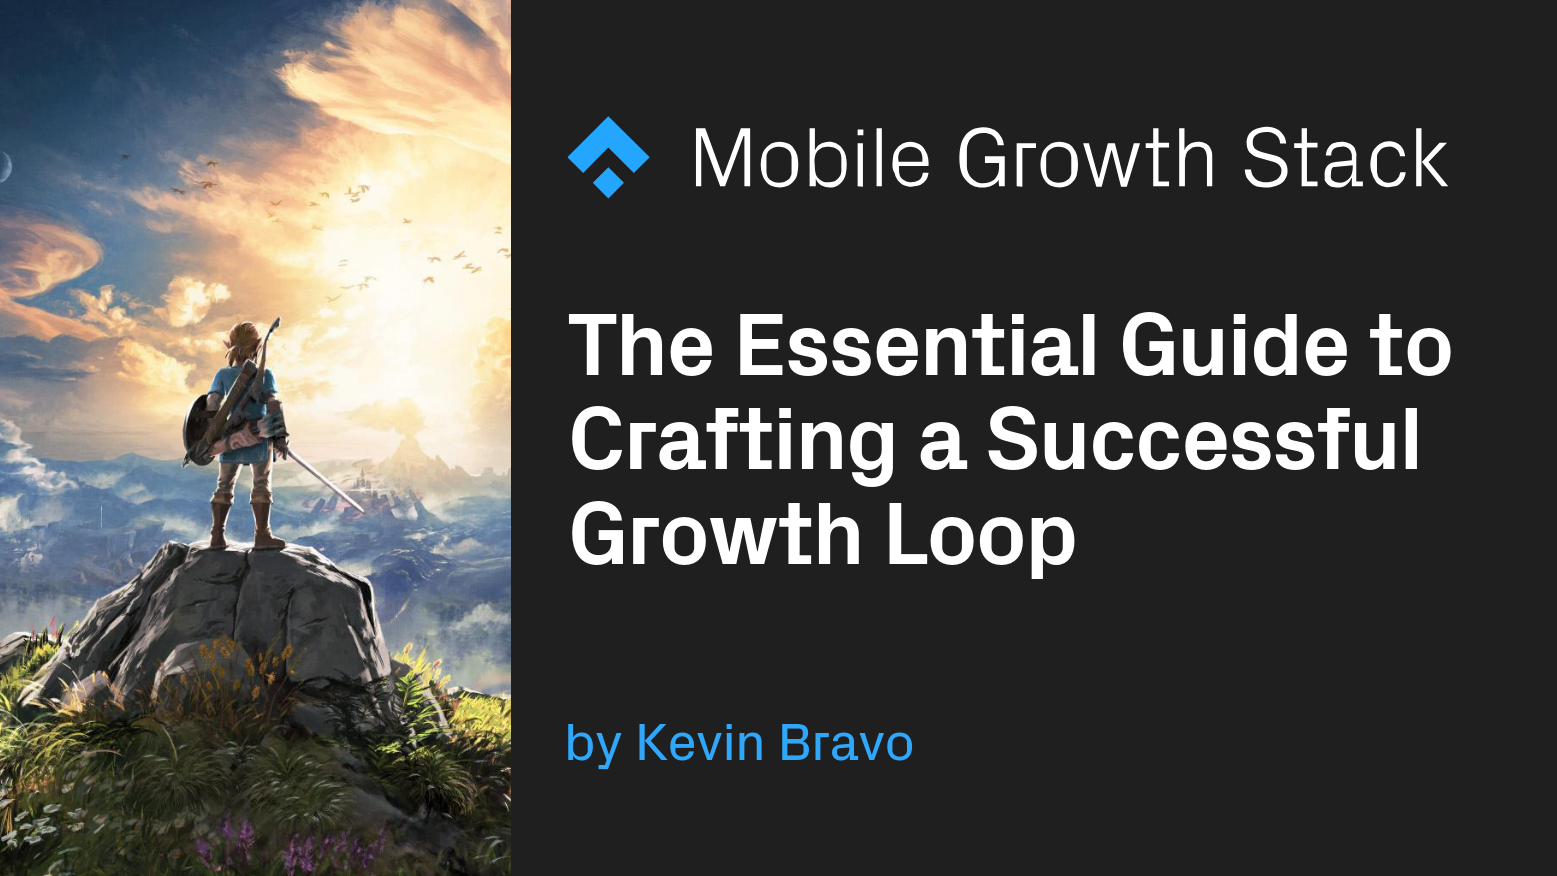 The essential guide to crafting a successful Growth Loop.